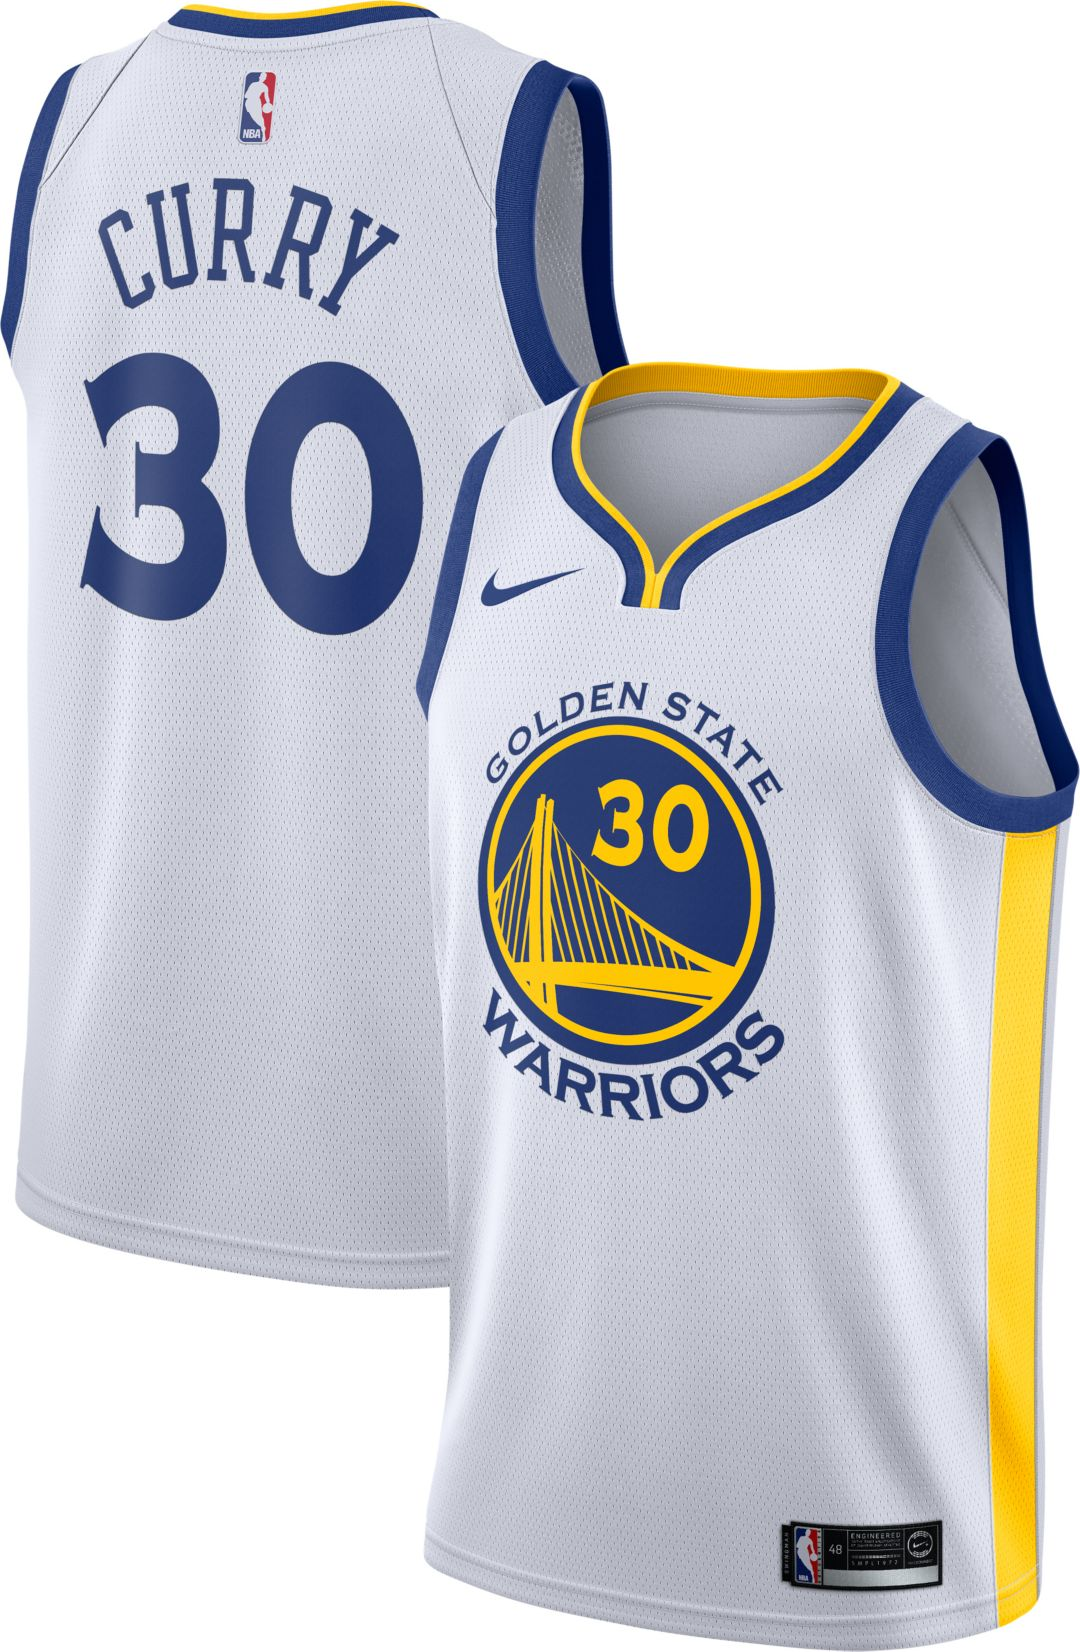 6a3b41e5bf62 Nike Men s Golden State Warriors Stephen Curry  30 White Dri-FIT Swingman  Jersey 1